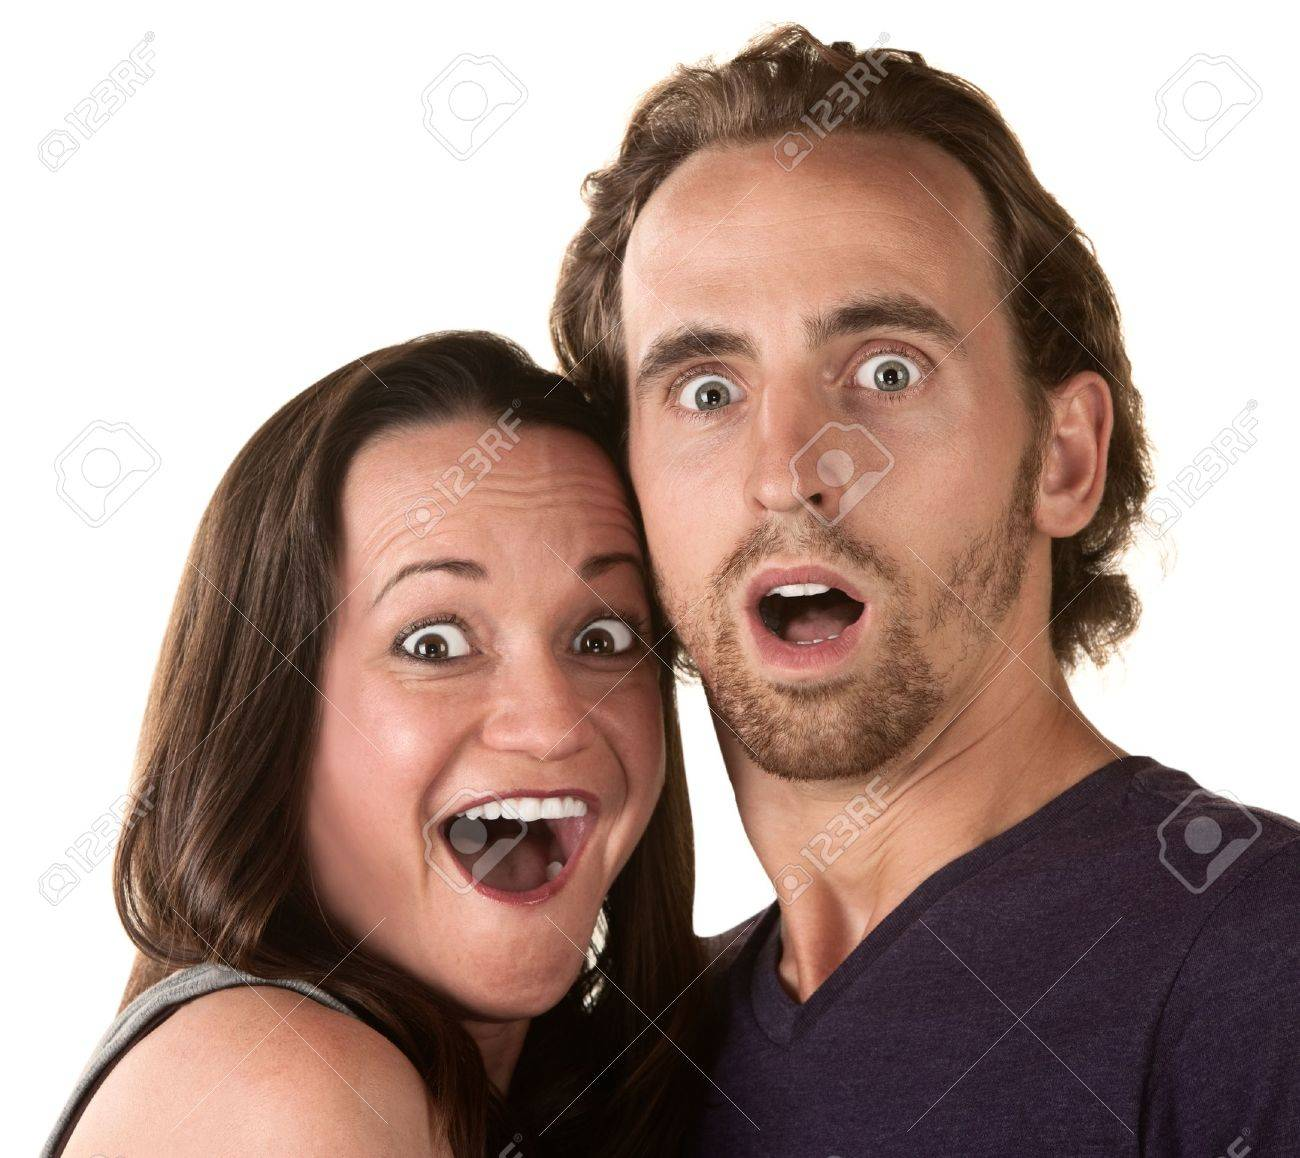 Surprised white man and woman over isolated background Stock Photo - 16300094